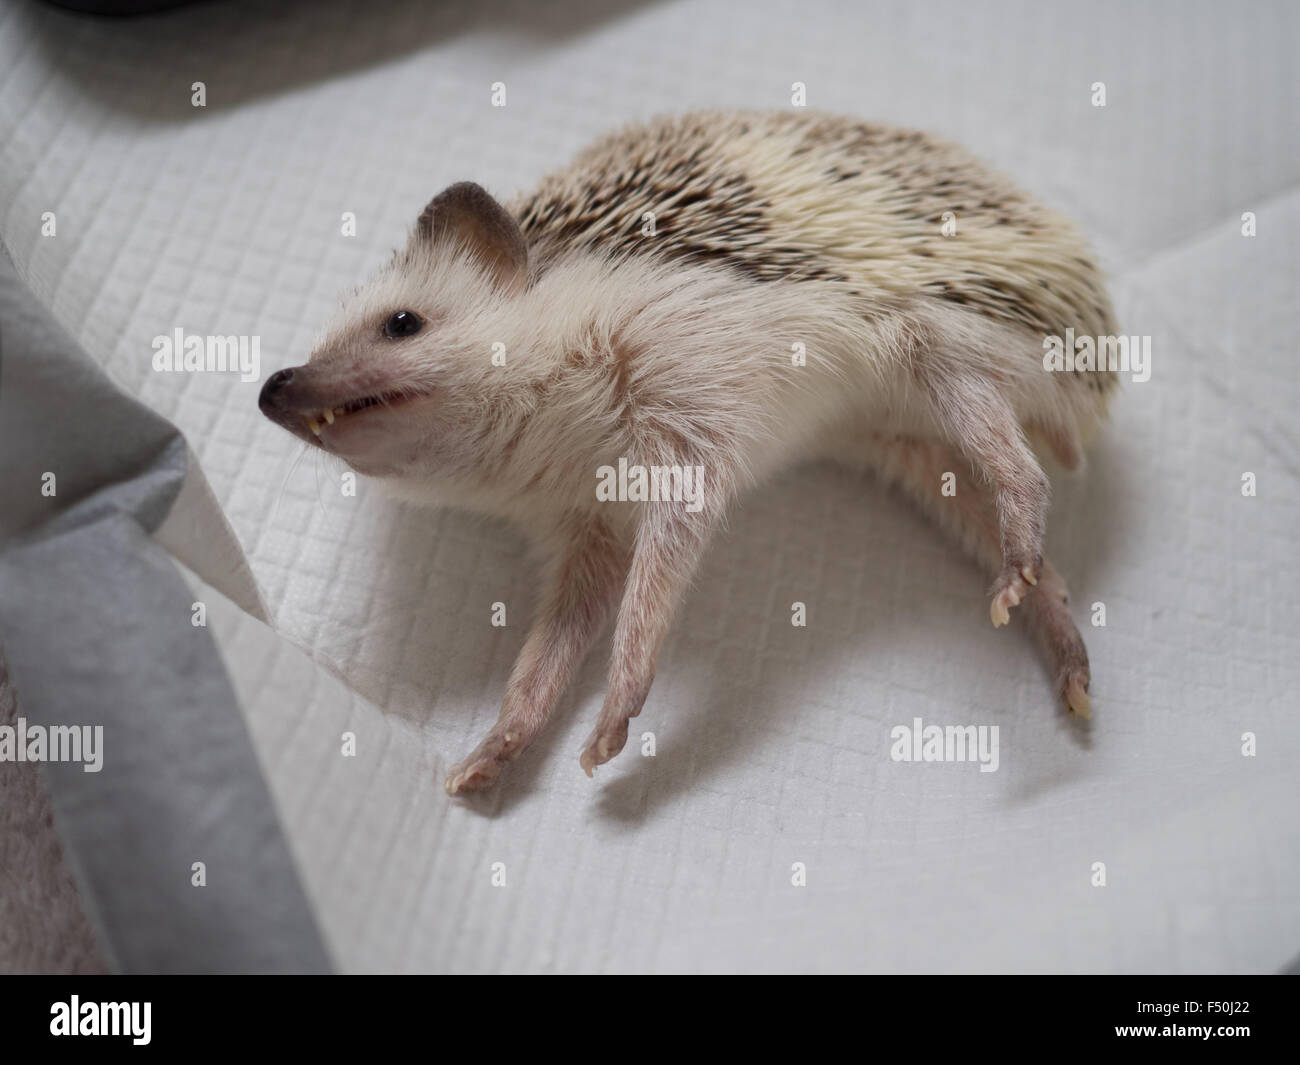 A sick hedgehog lays on a quilted sheet - Stock Image